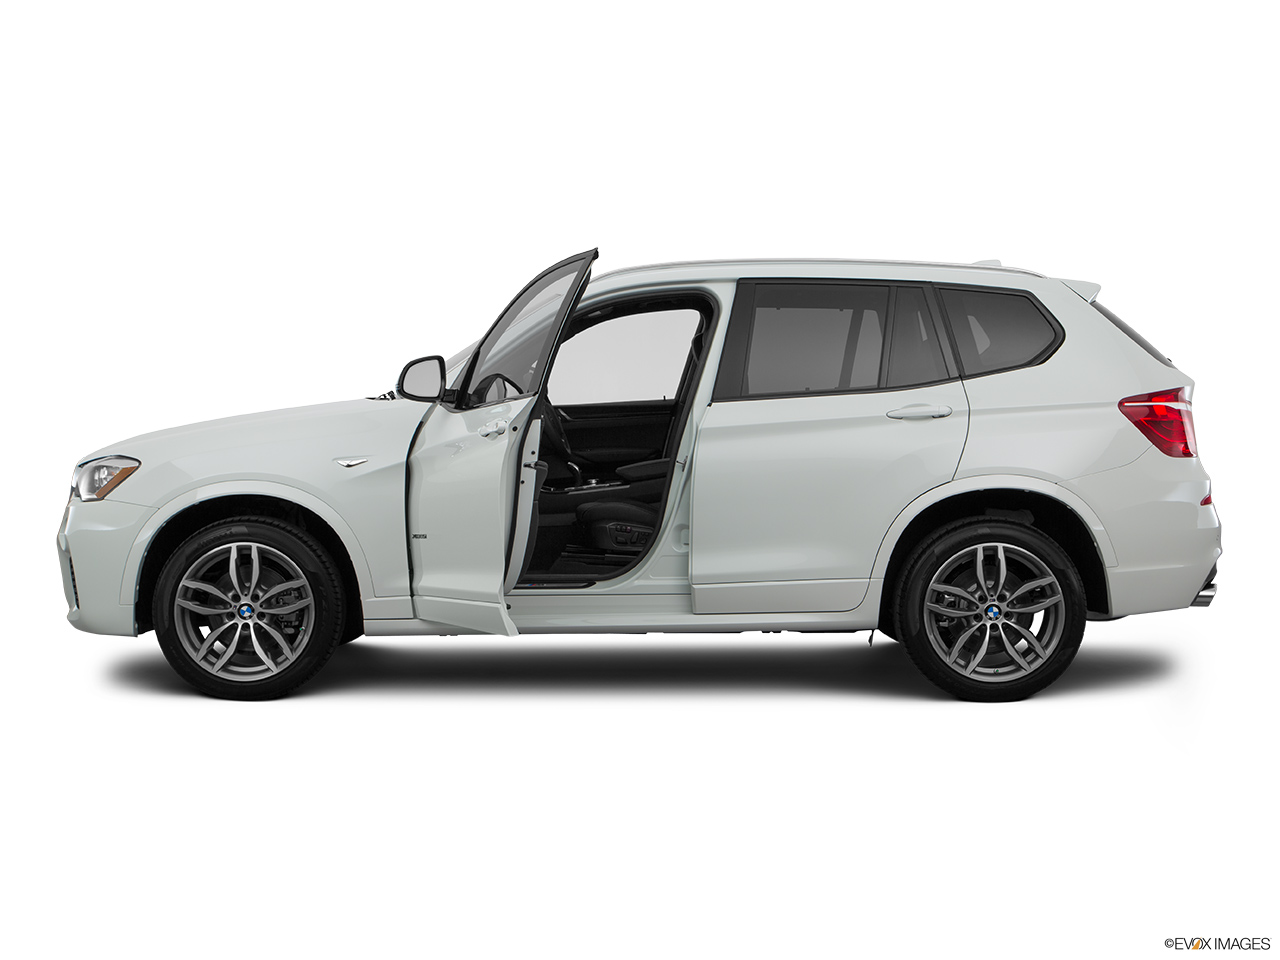 car features list for bmw x3 2017 xdrive 35i uae. Black Bedroom Furniture Sets. Home Design Ideas